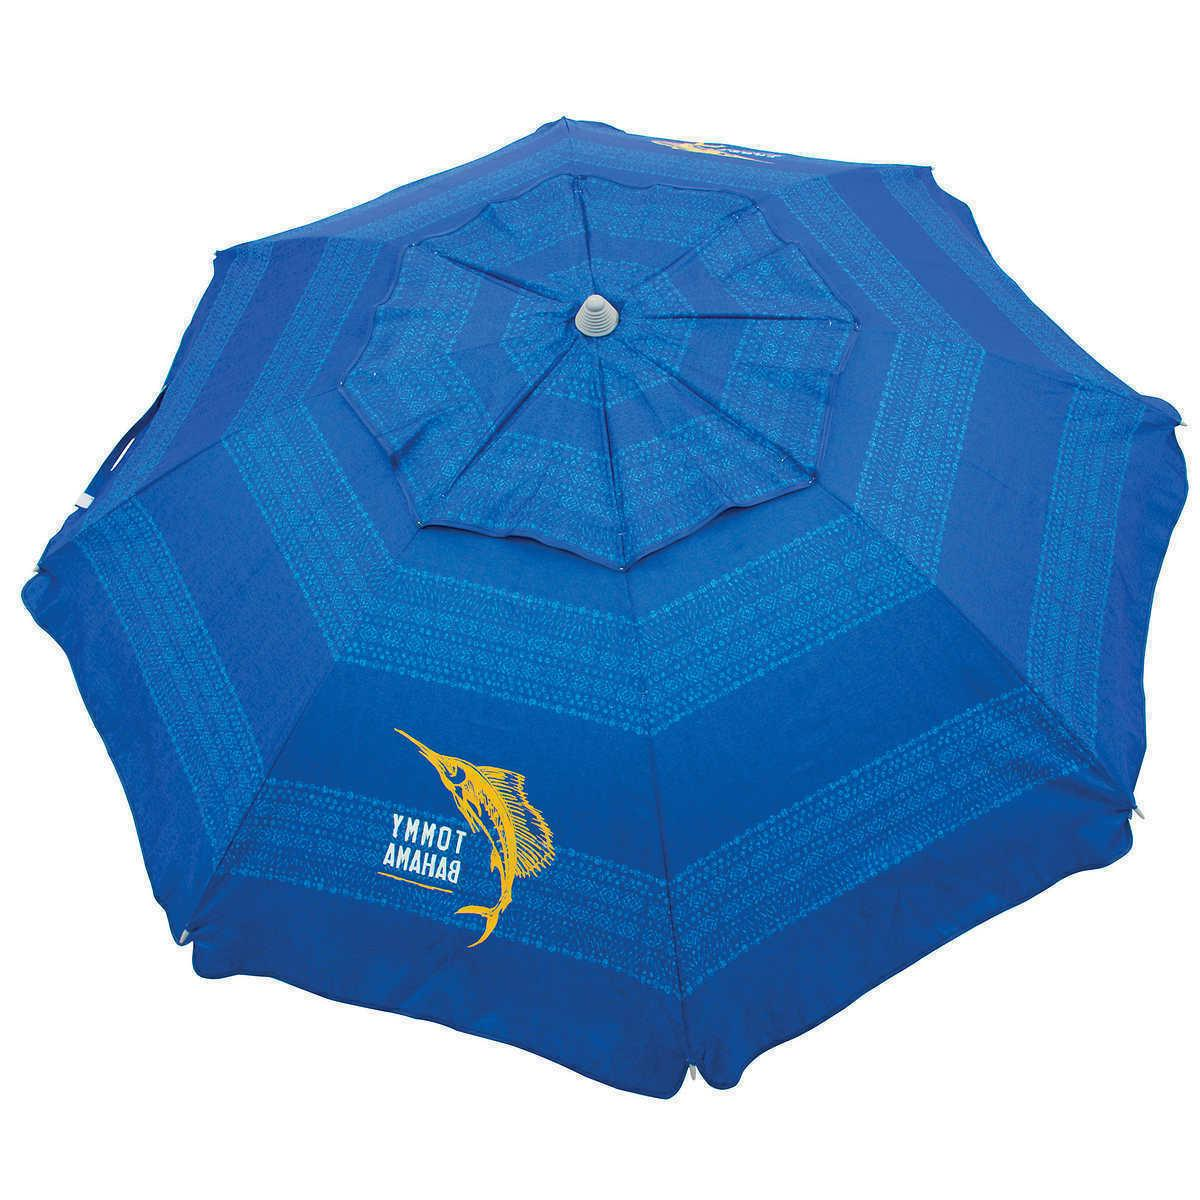 Tommy Bahama Beach Umbrella in Color Blue New 2019 FREE SHIP